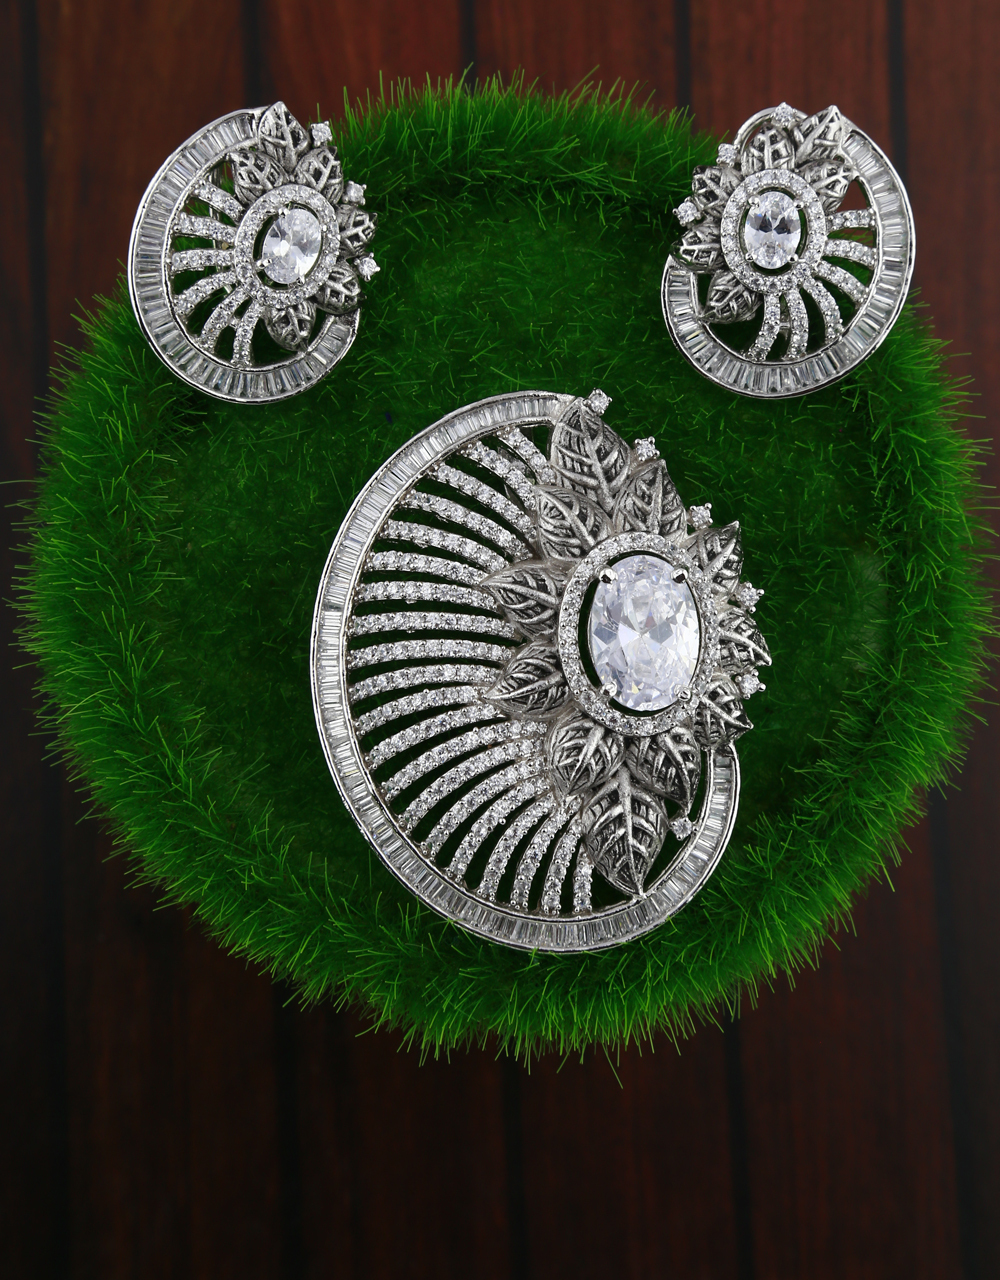 American diamond studded fancy silver-plated pendant with earrings set